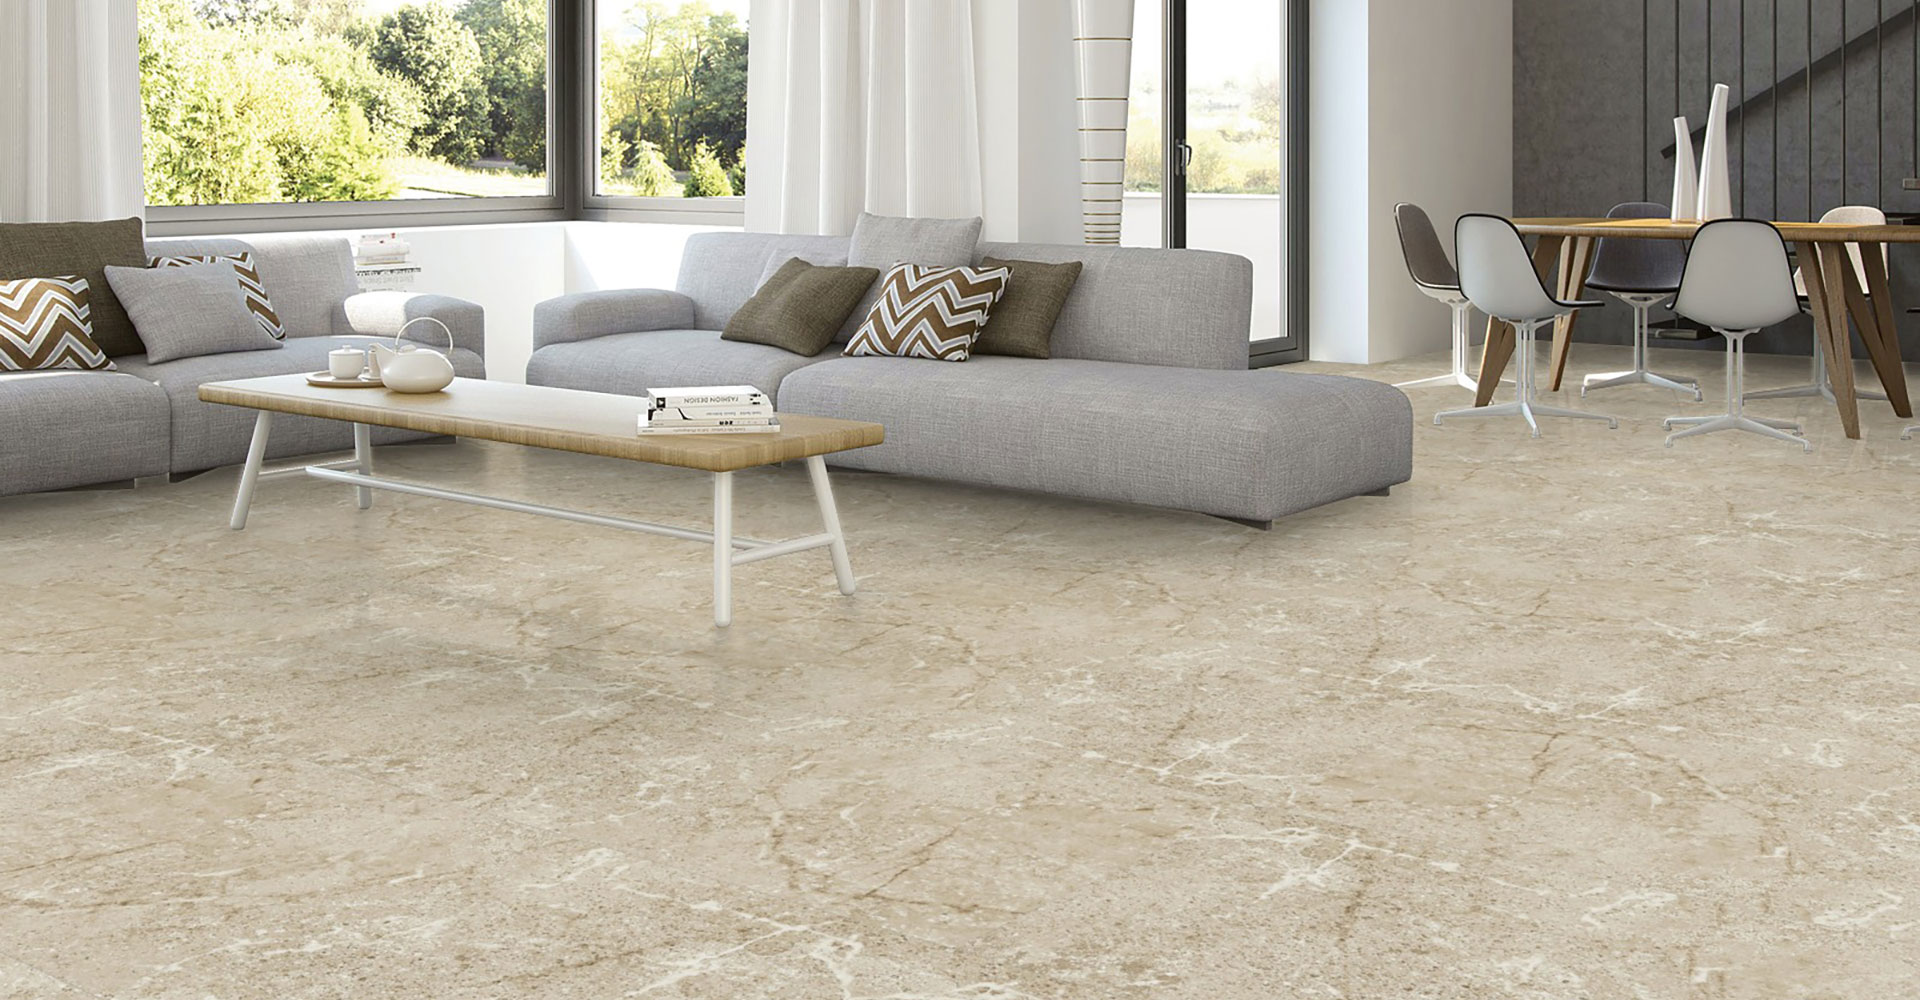 Exclusive Glazed Porcelain Tiles